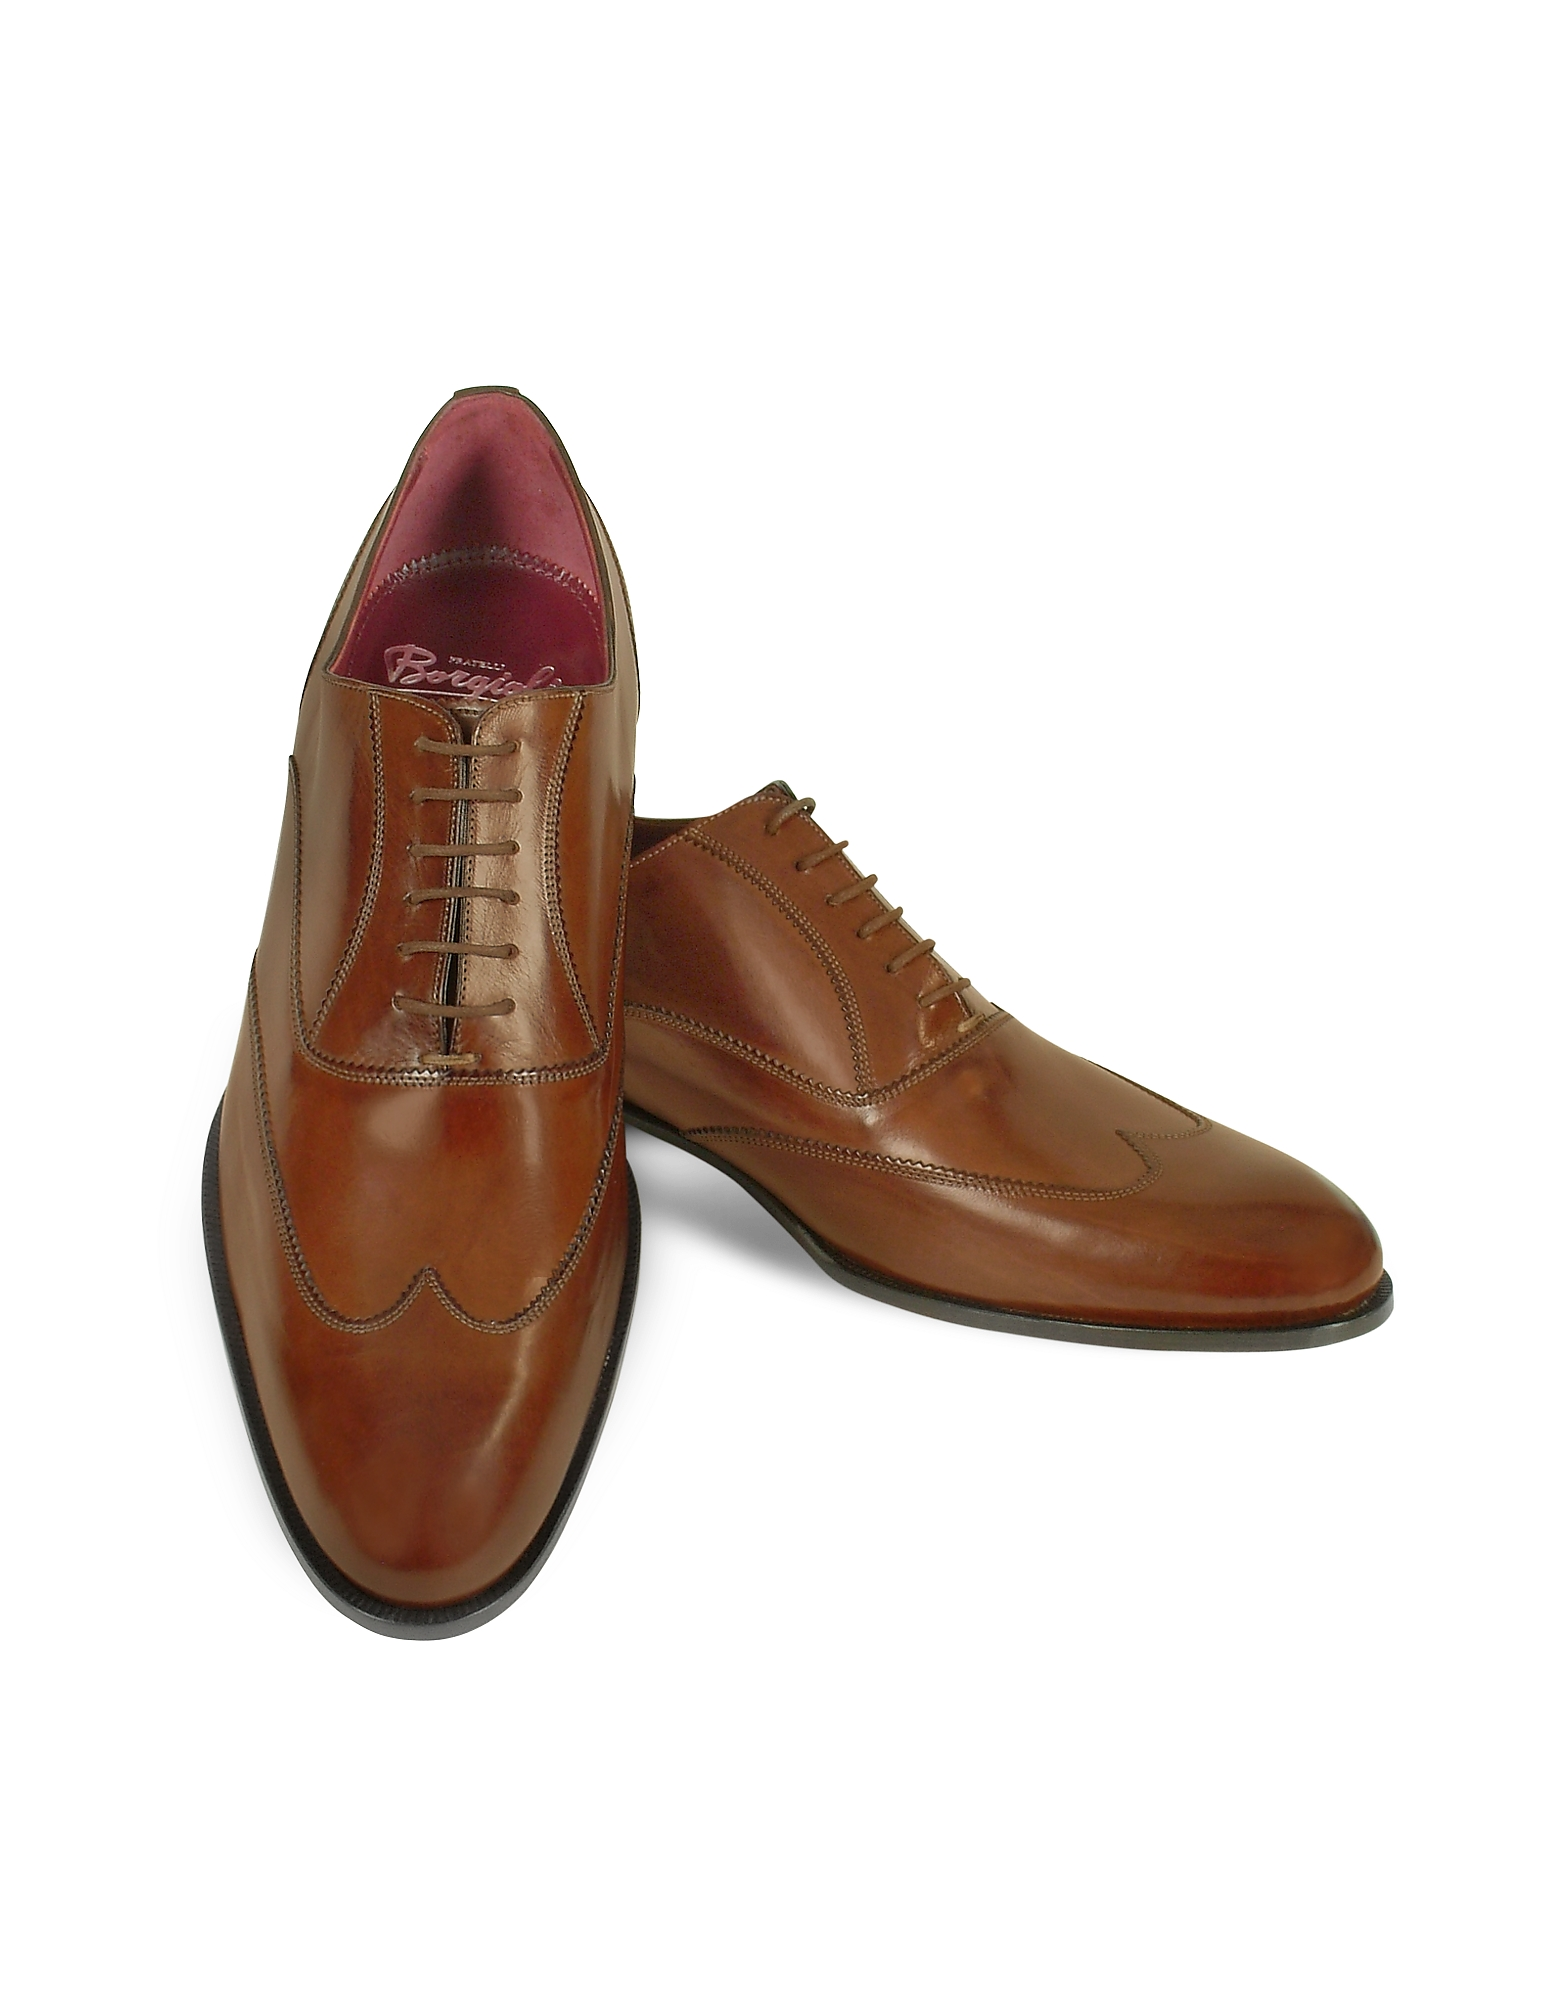 Fratelli Borgioli Shoes, Handmade Brown Italian Leather Wingtip Oxford Shoes